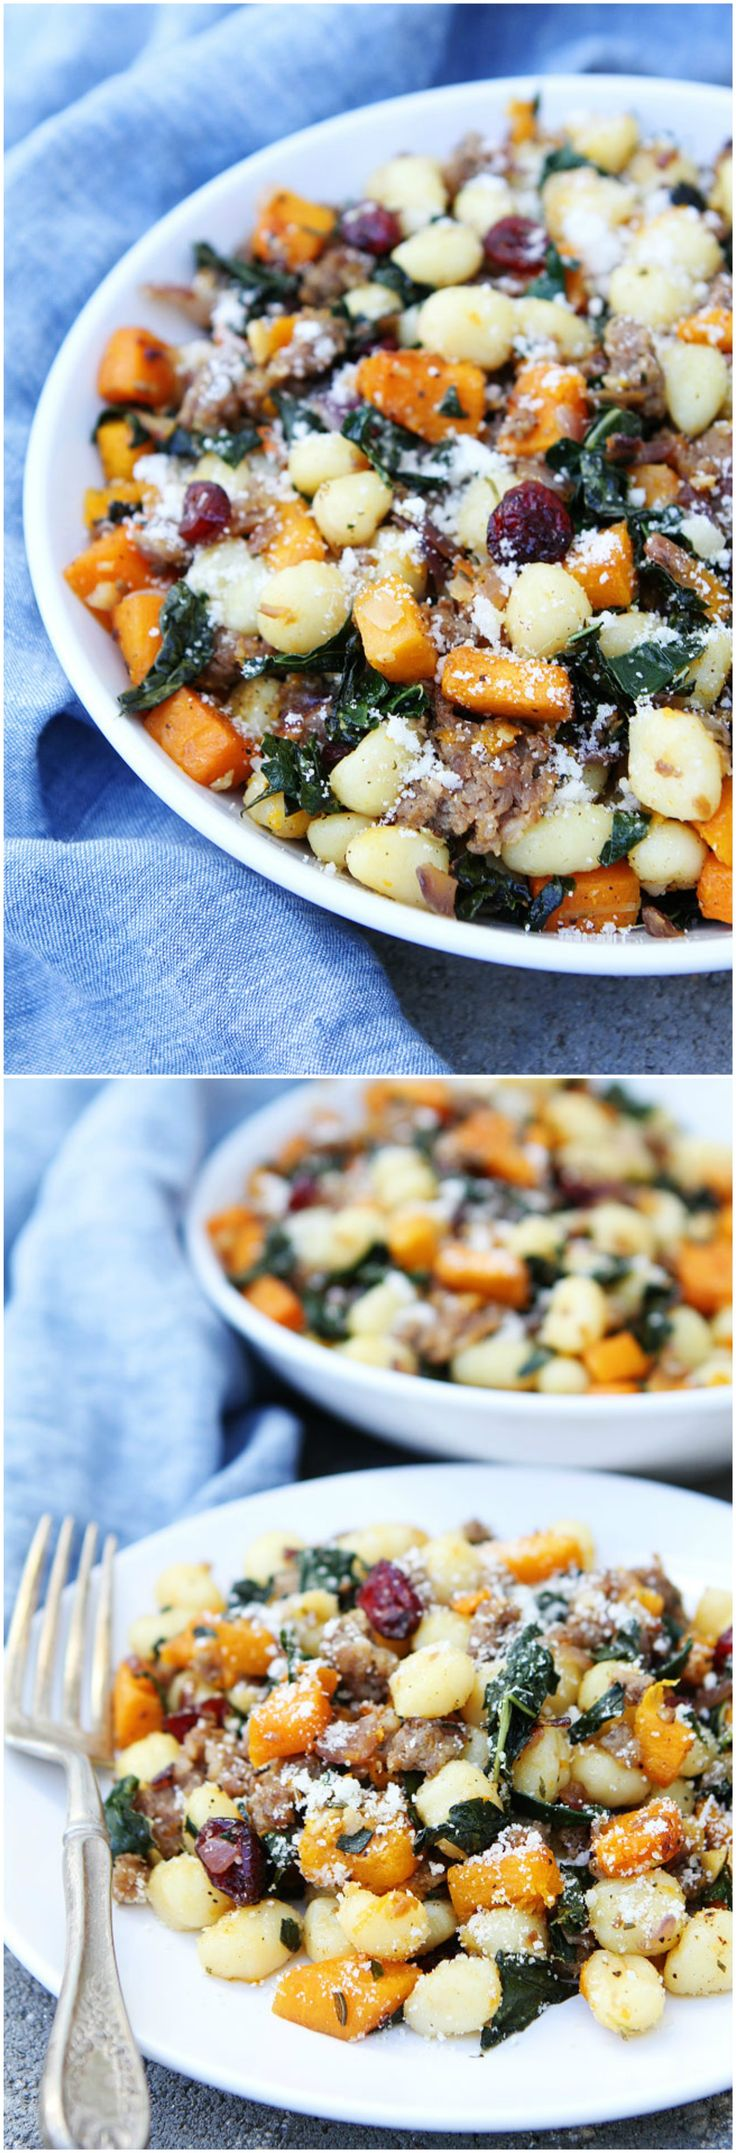 ... on Pinterest | Butternut squash, Thanksgiving sides and Gnocchi